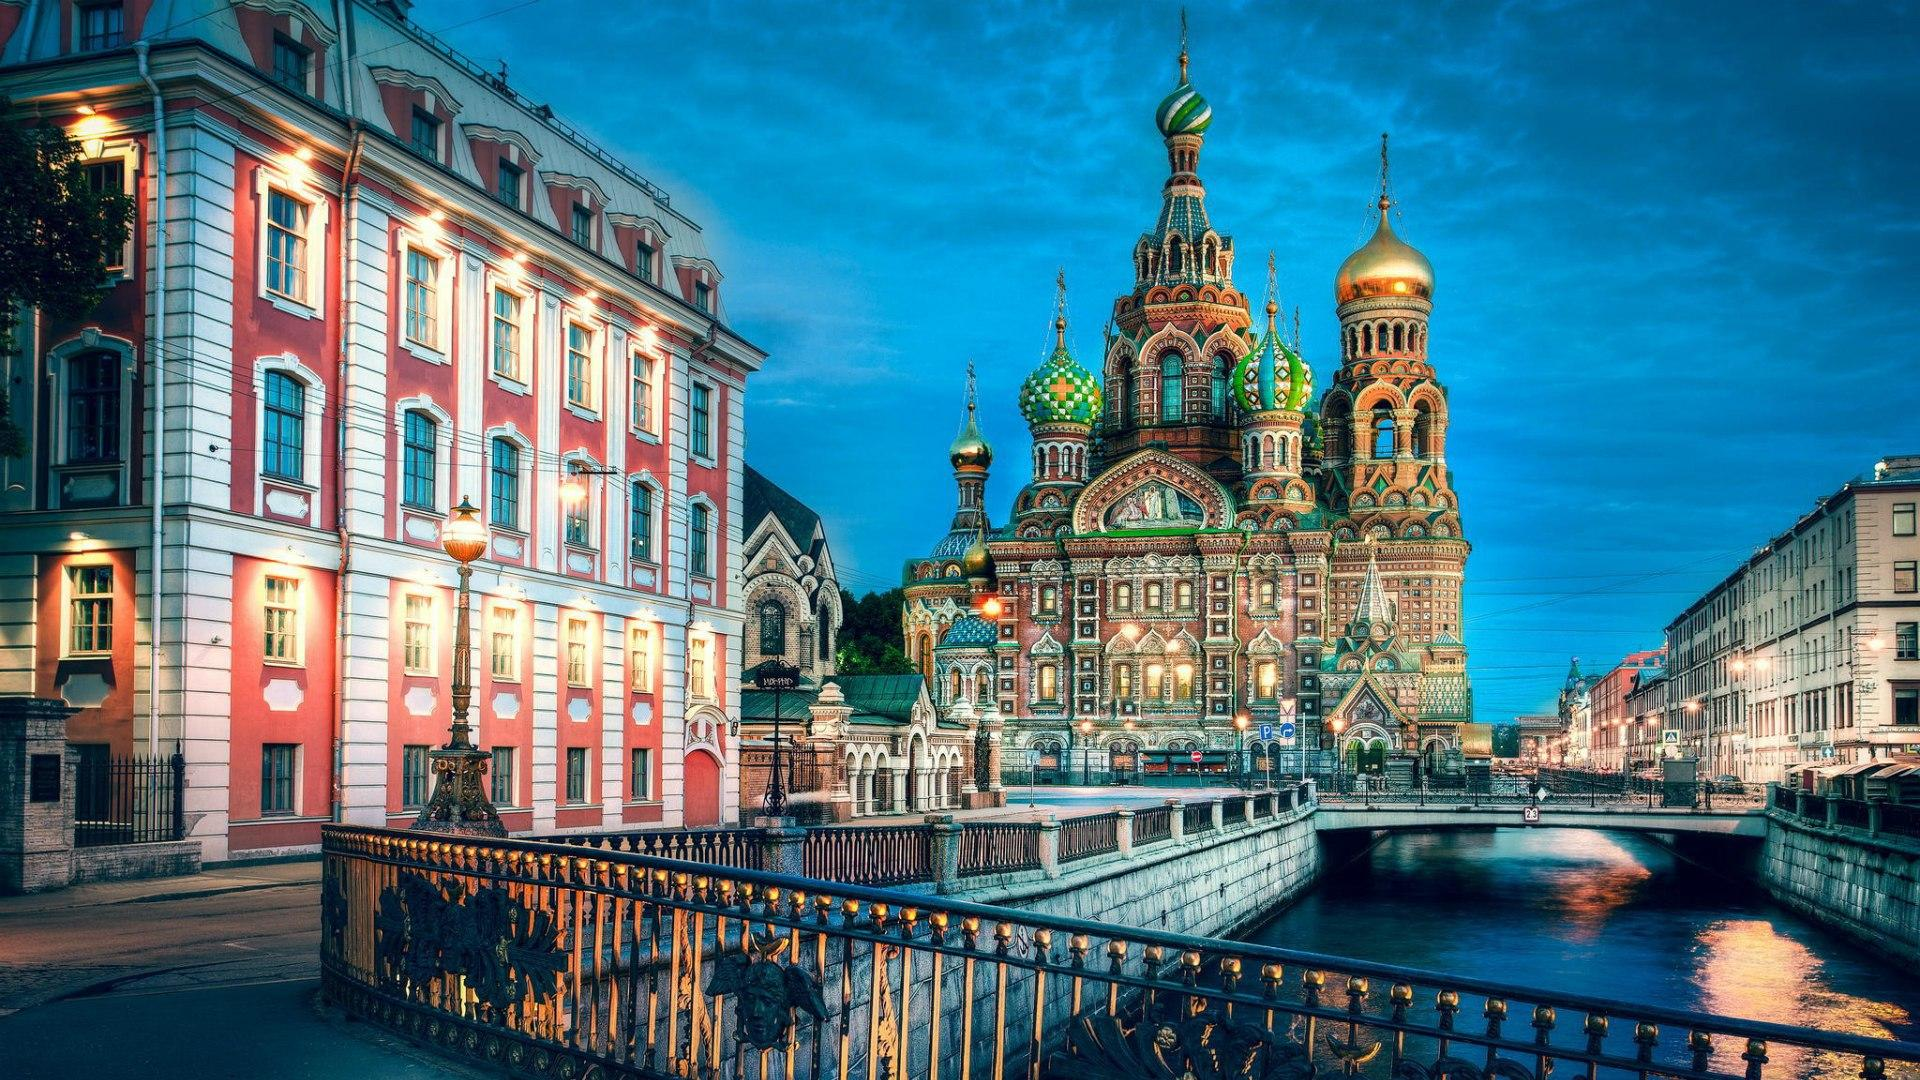 Saint Petersburg Wallpapers HD Backgrounds, Images, Pics, Photos ...